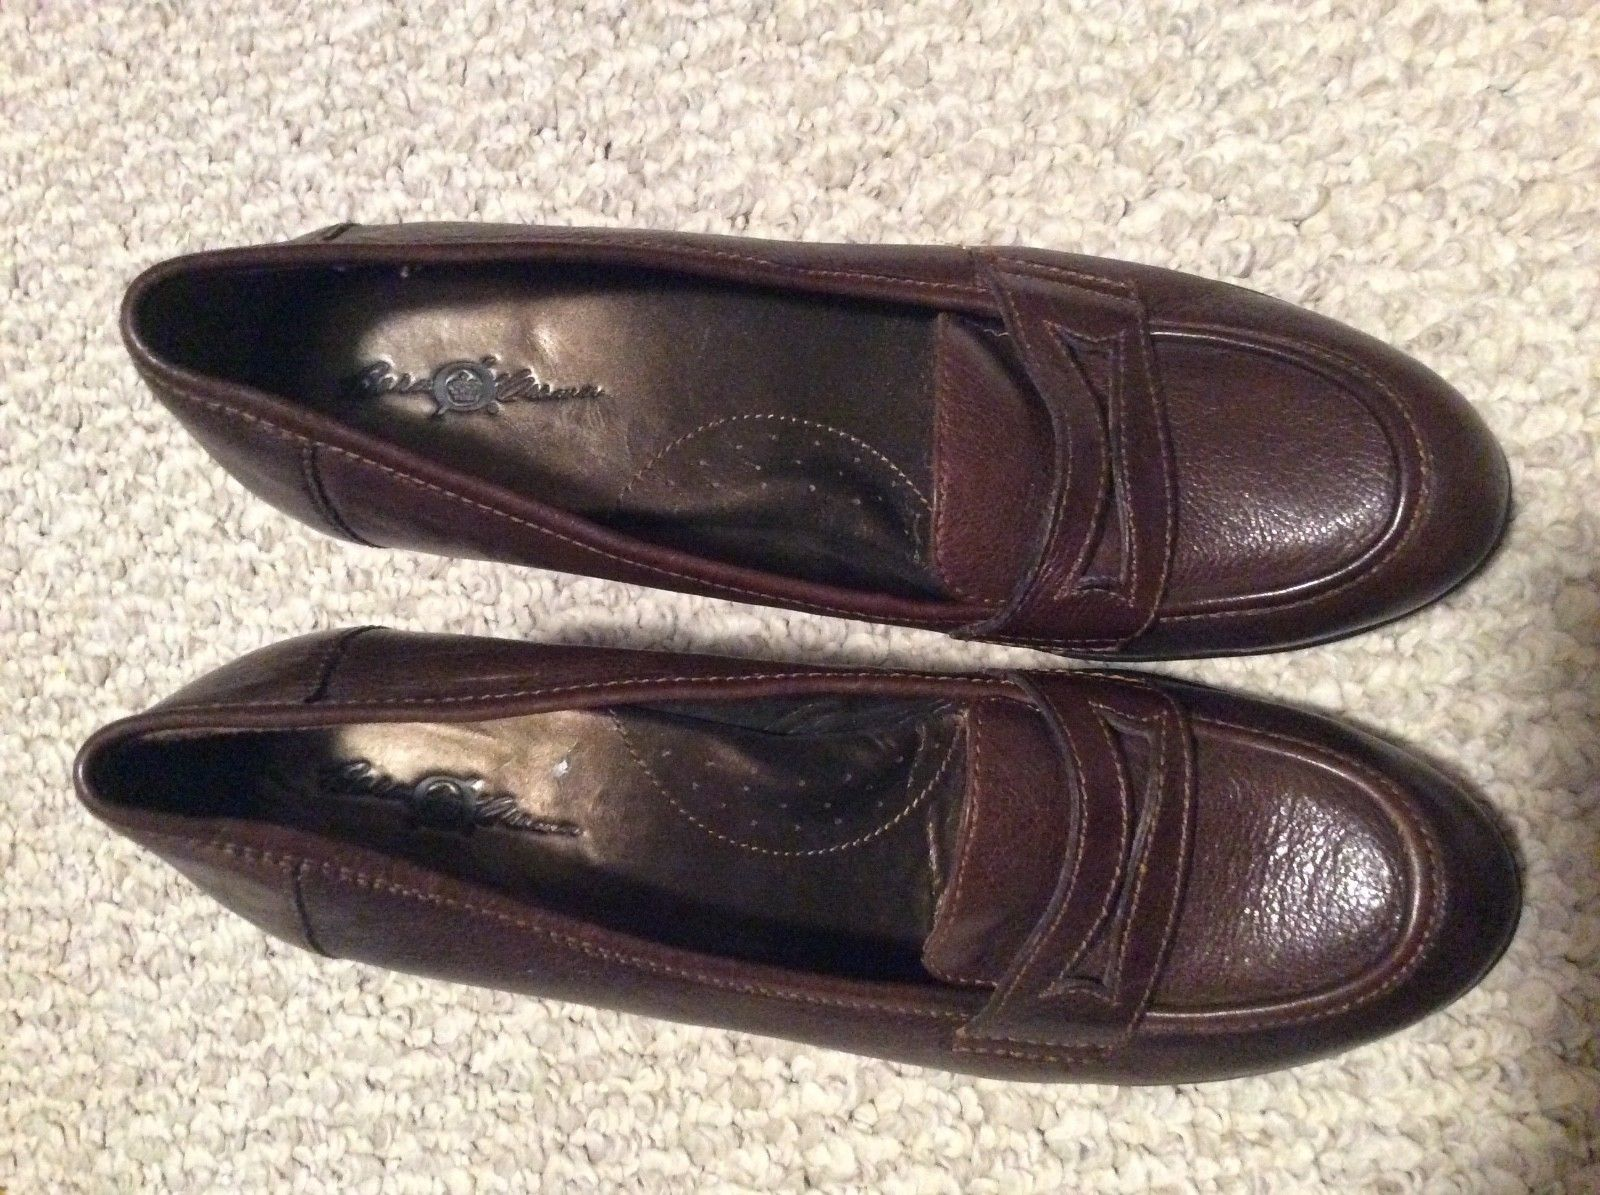 Women's 9 BORN Brn Real Leather Shoes HI HEEL LOAFERS BARELY WORN -NICE! PRETTY!